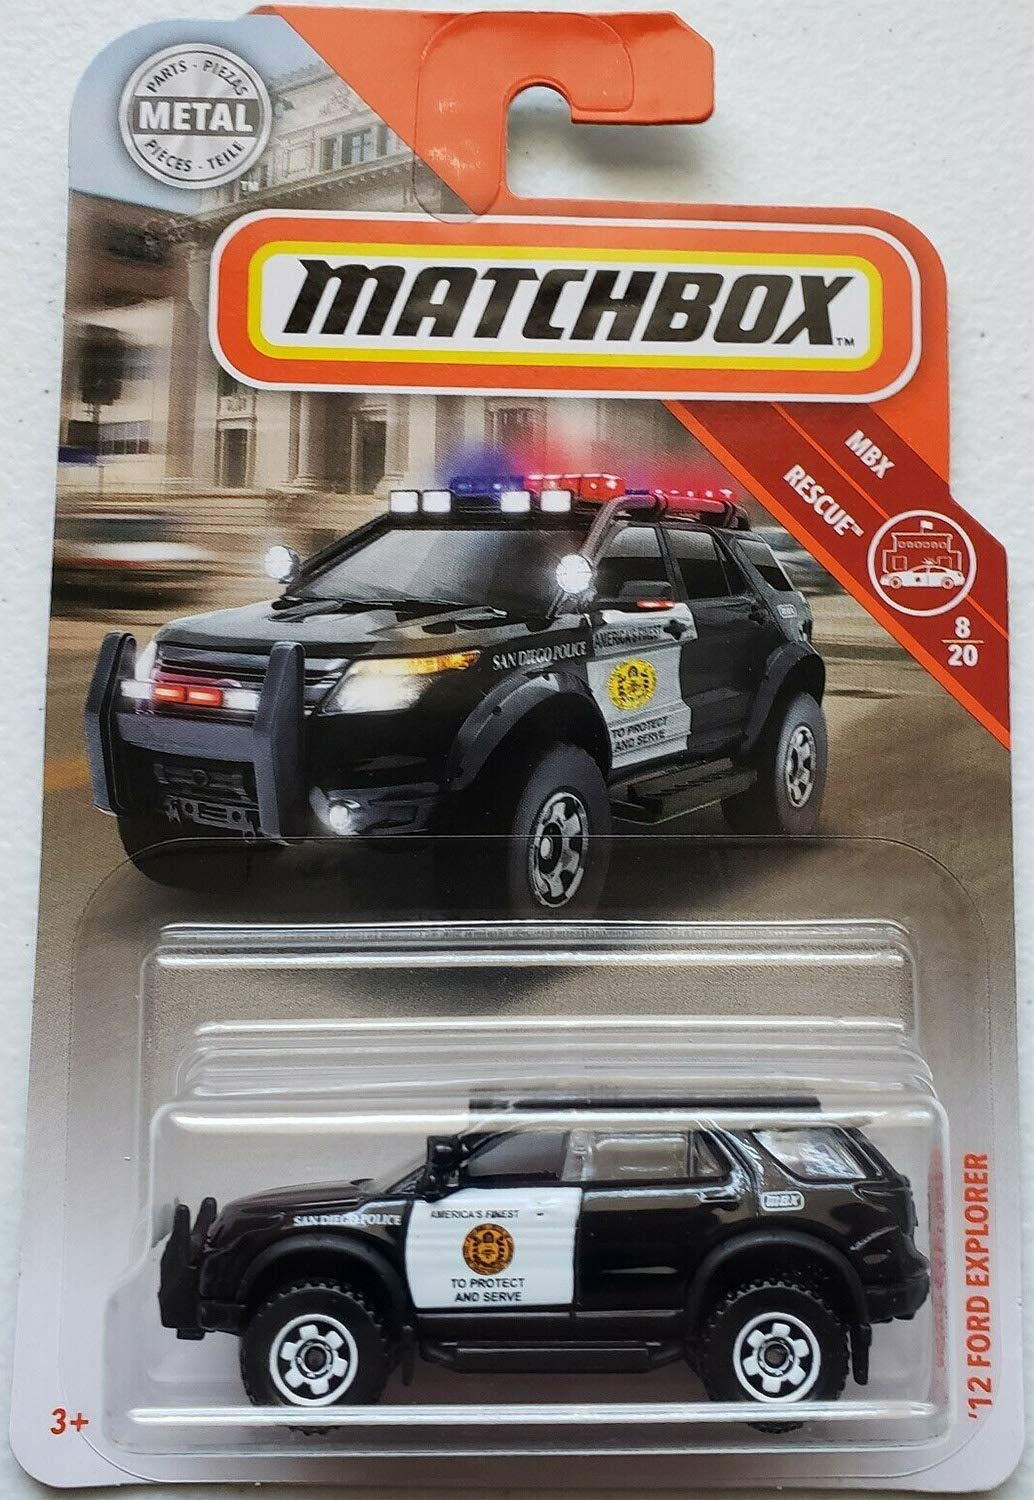 San Diego Ford >> Mbx Matchbox 12 Ford Explorer San Diego Police Rescue Series 1 64 Scale Collectible Die Cast Metal Toy Car Model 8 20